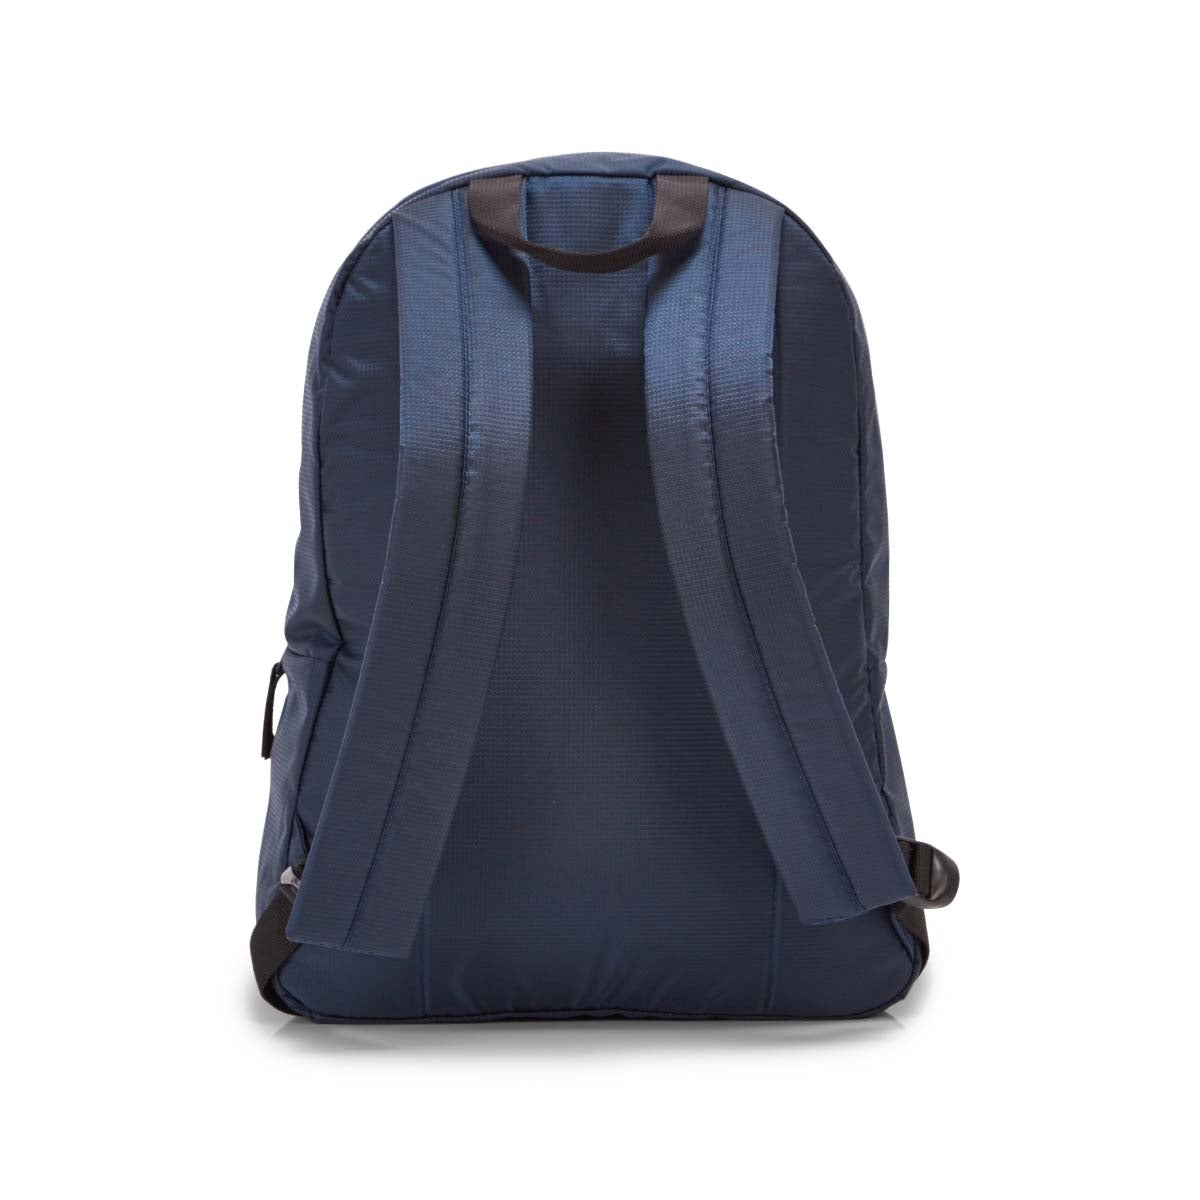 Timberland Classic navy backpack